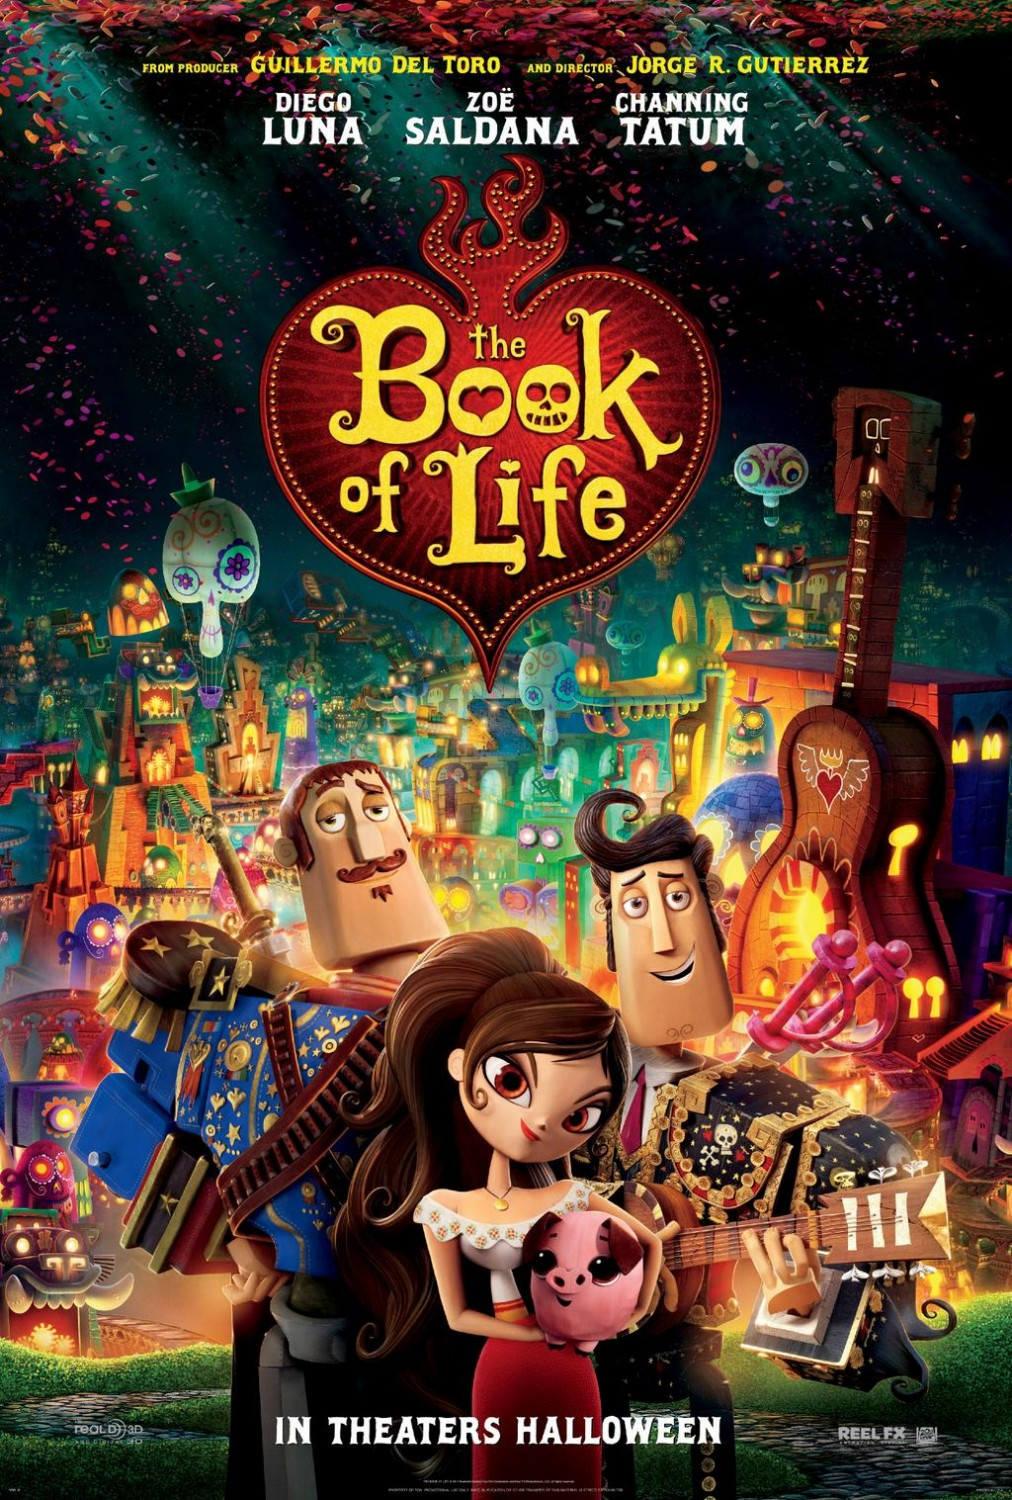 BOOK OF LIFE-Official Poster Banner PROMO NACIONAL-25JULHO2014-07